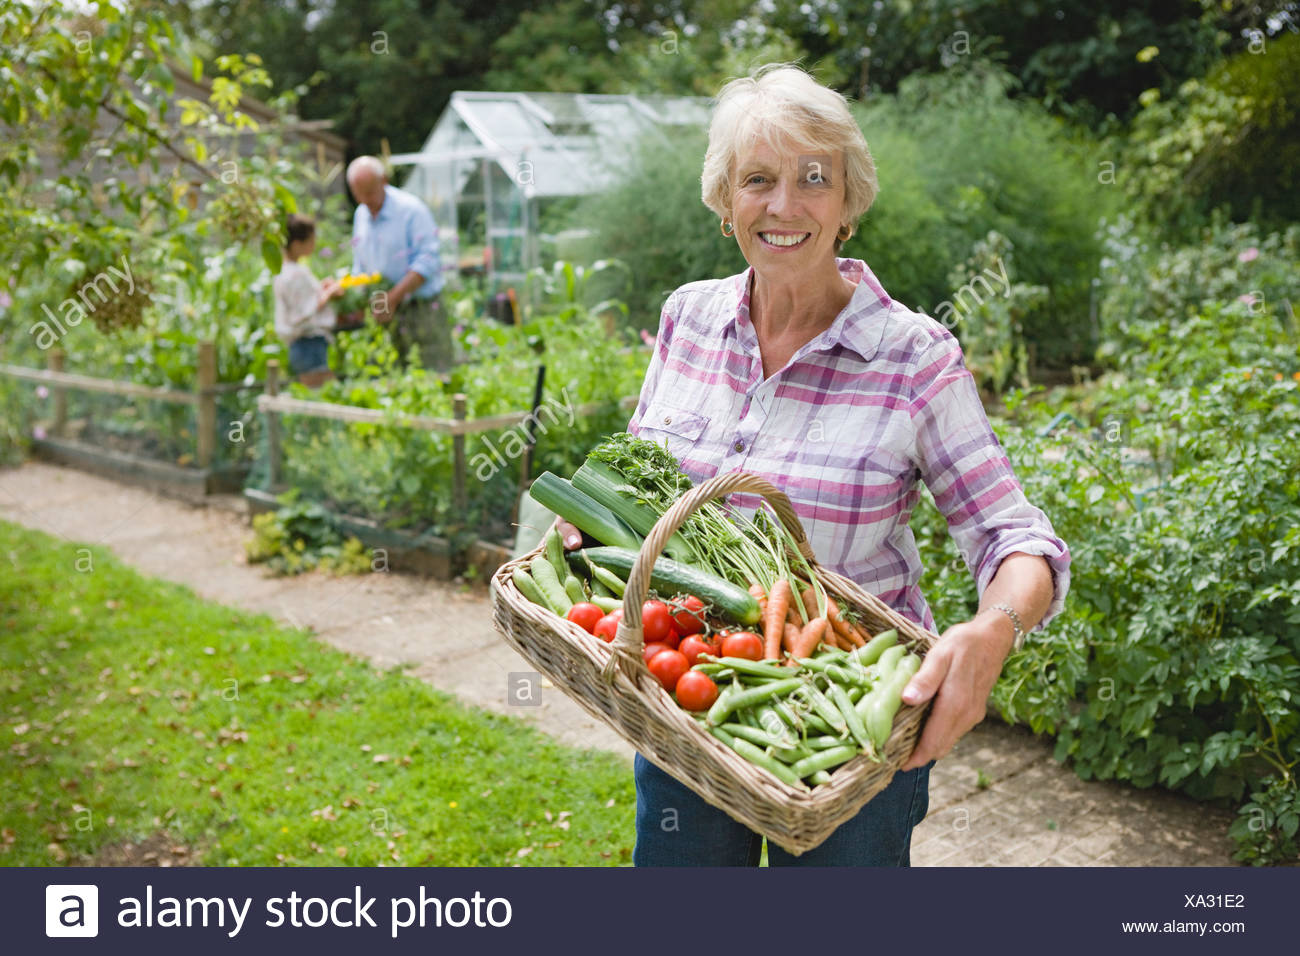 Grandmother With Basket Of Freshly Picked Vegetables - Stock Image